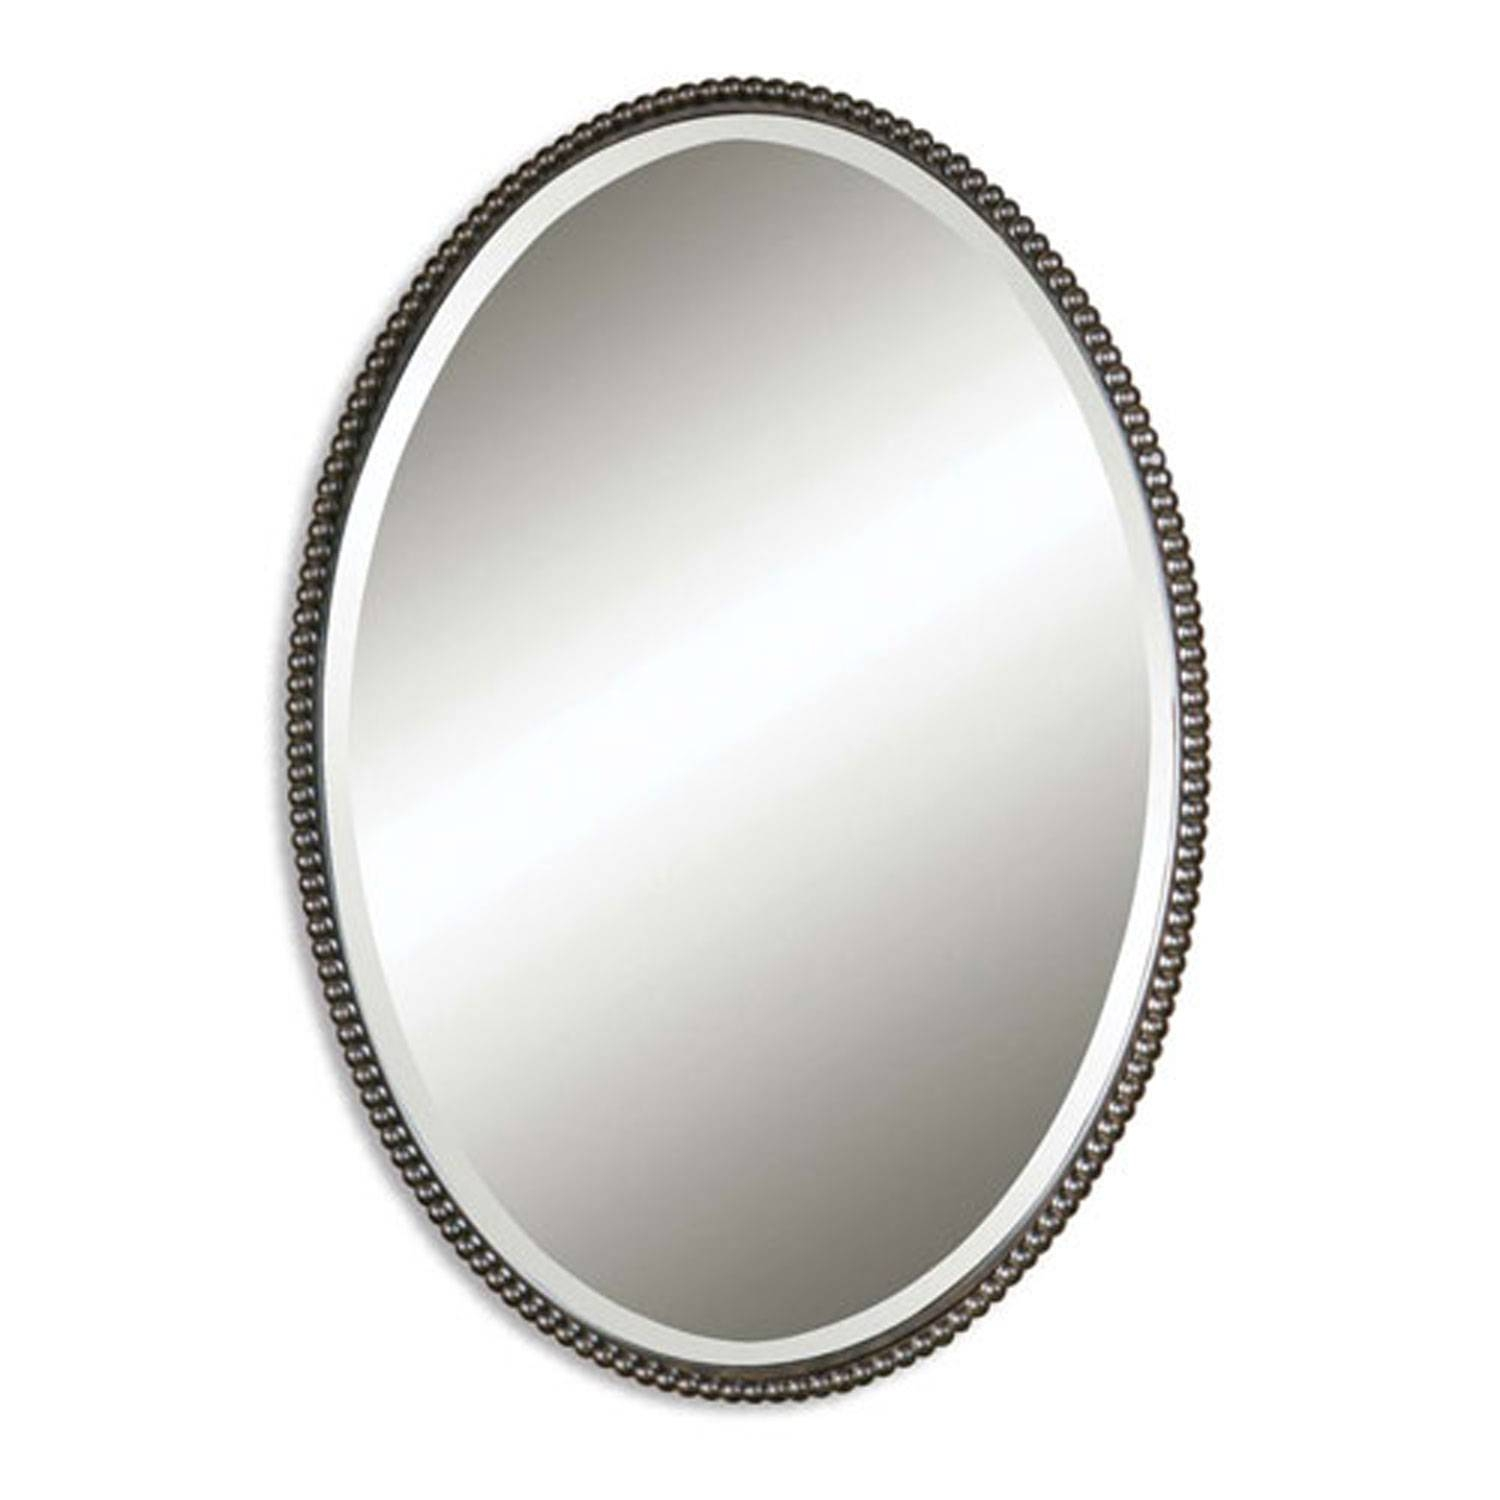 Oval Mirrors | Bellacor with regard to Long Oval Mirrors (Image 11 of 15)